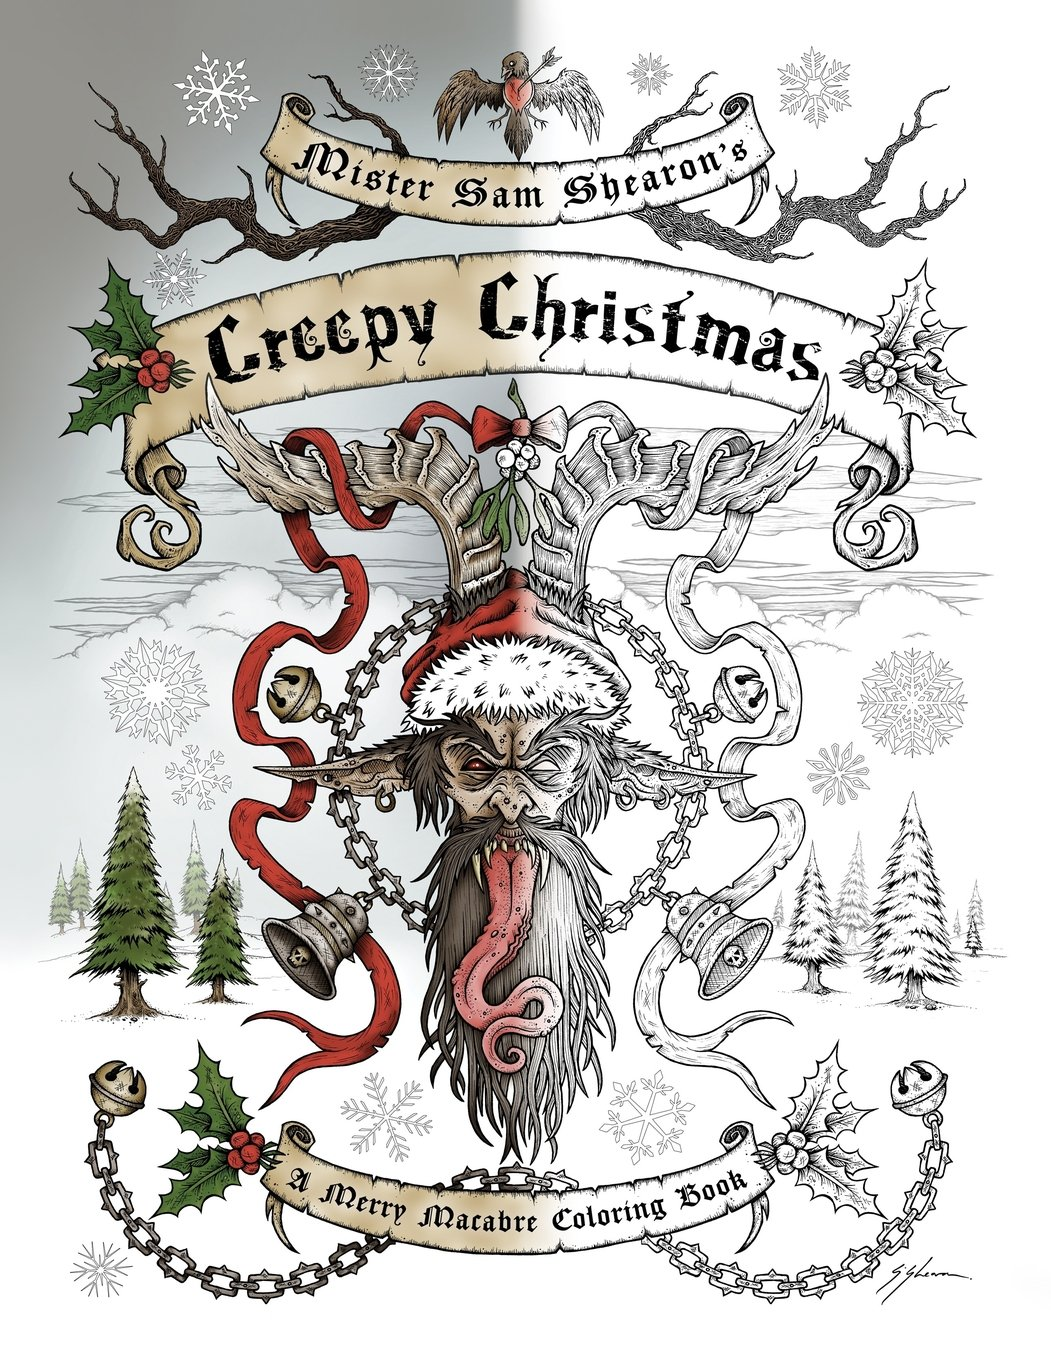 amazoncom mister sam shearons creepy christmas a merry macabre coloring book 9781944109226 sam shearon books